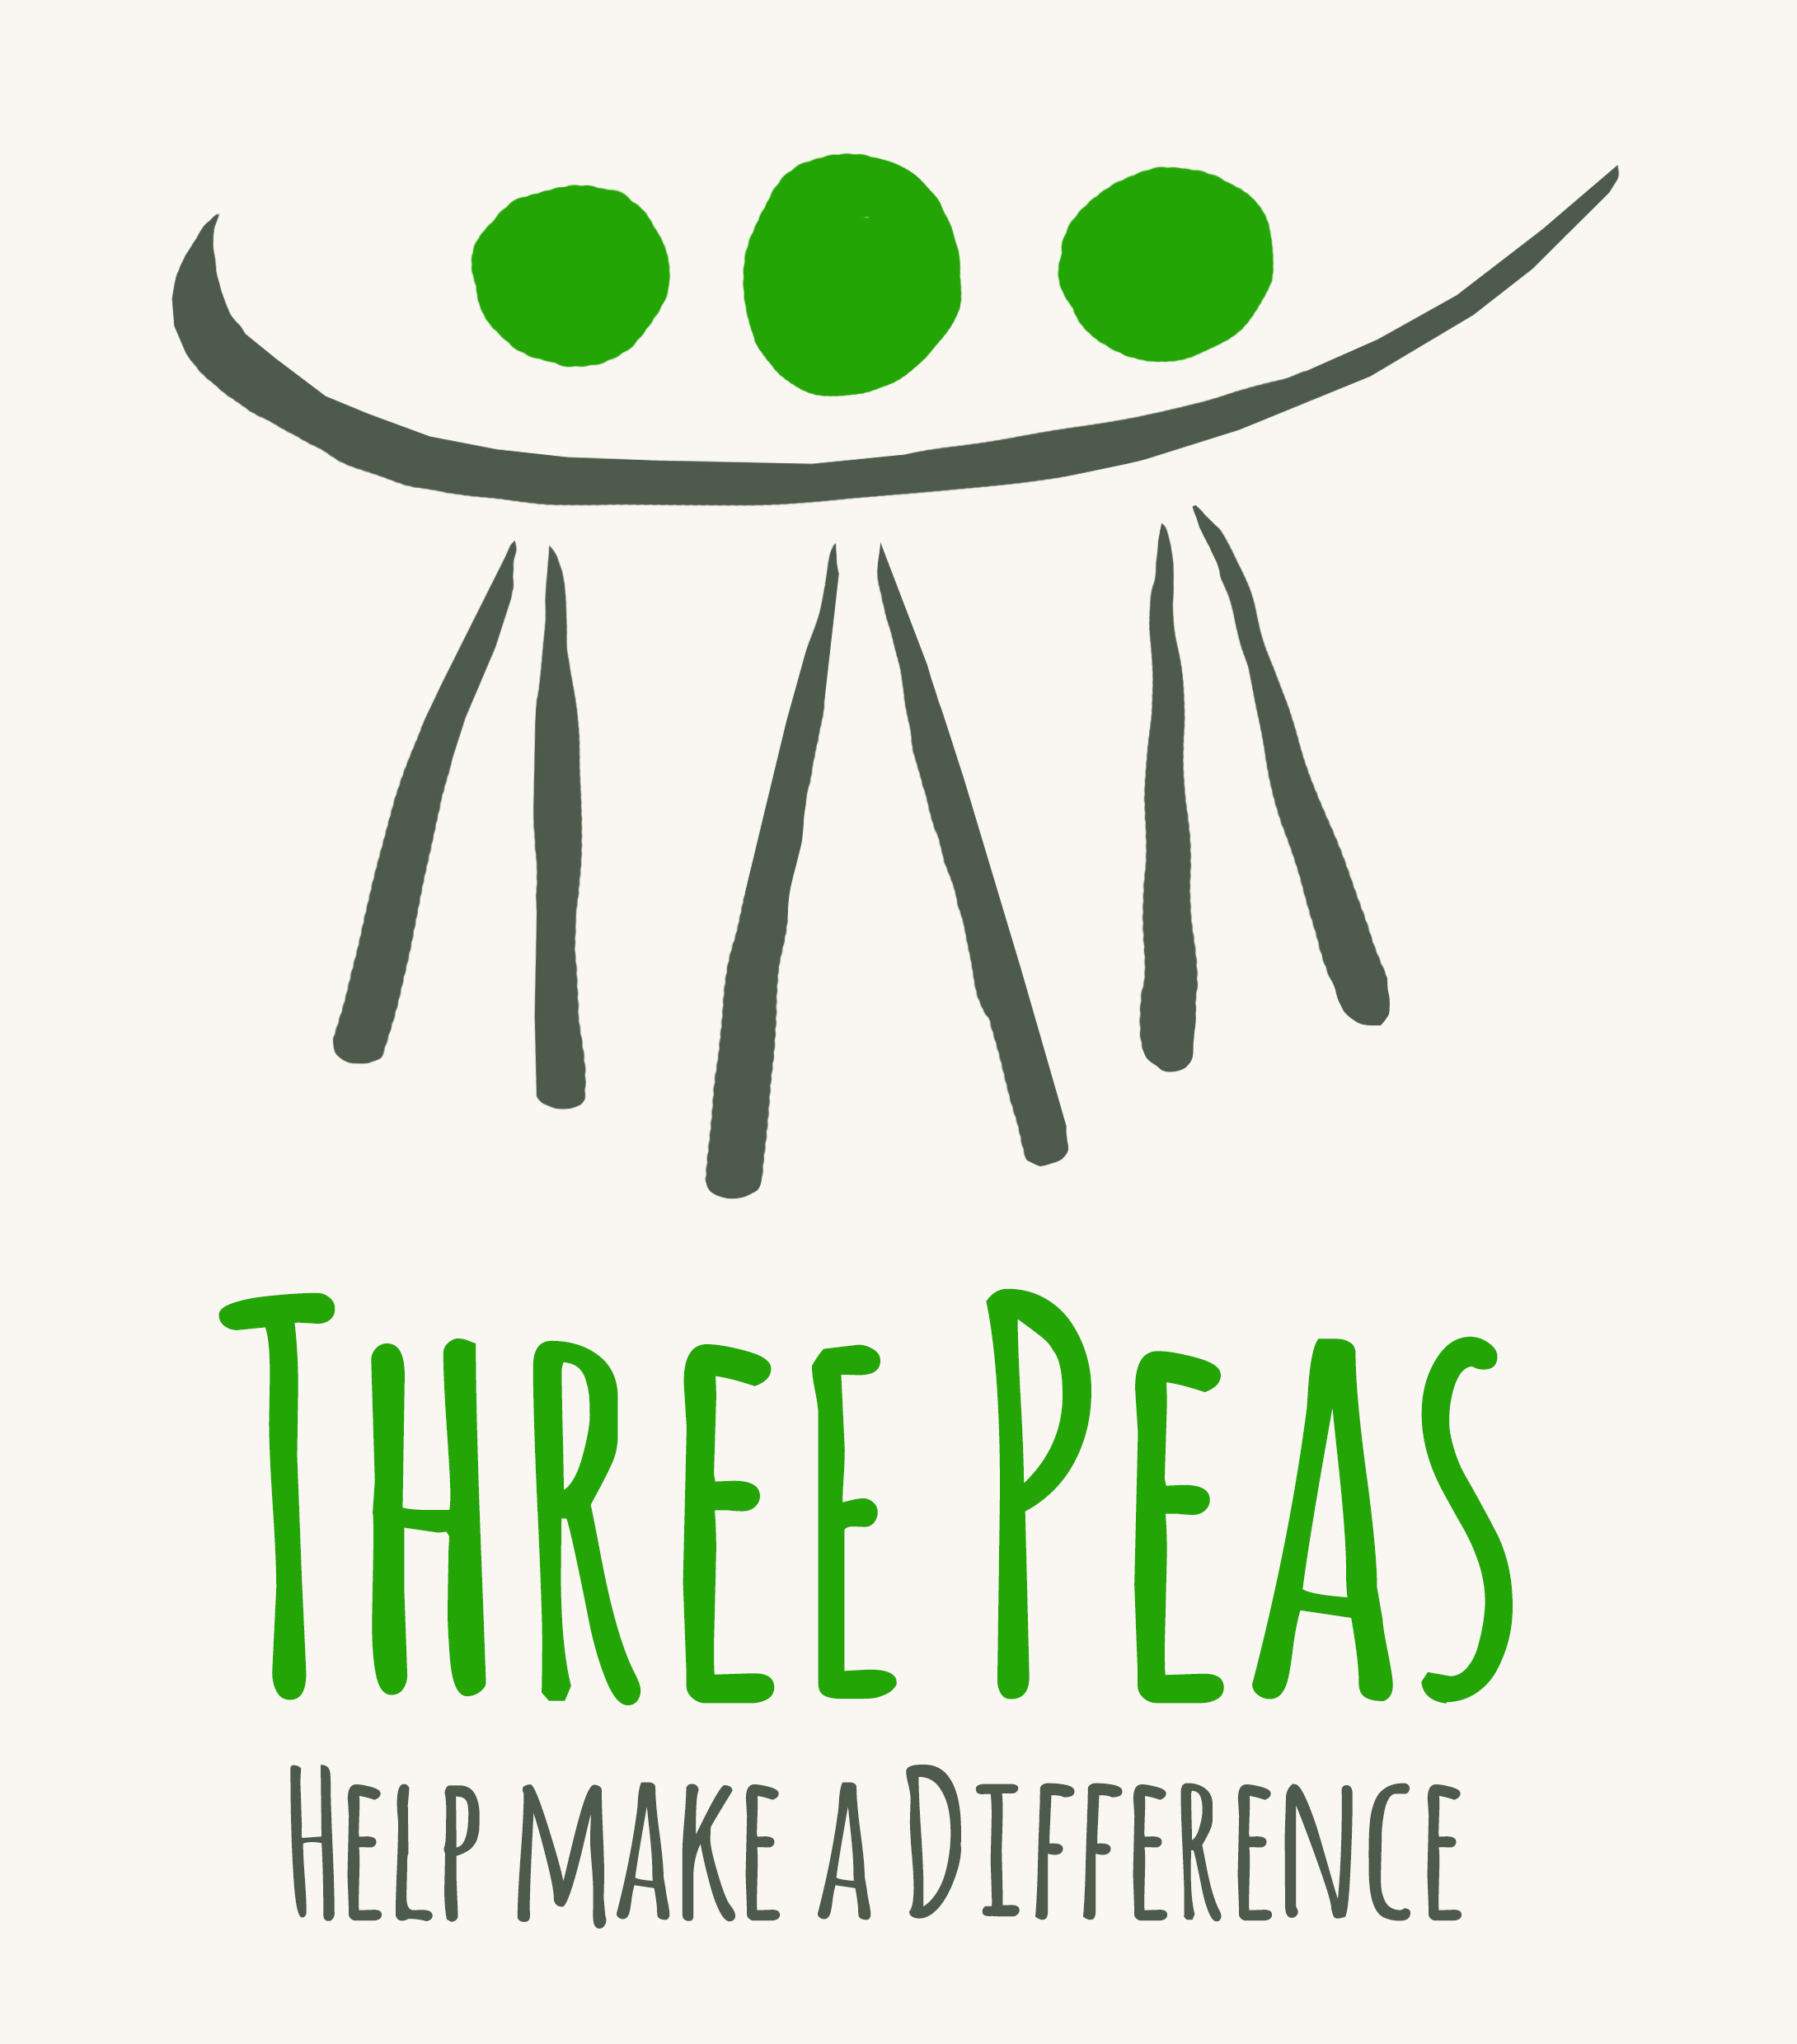 Three Peas help make a difference